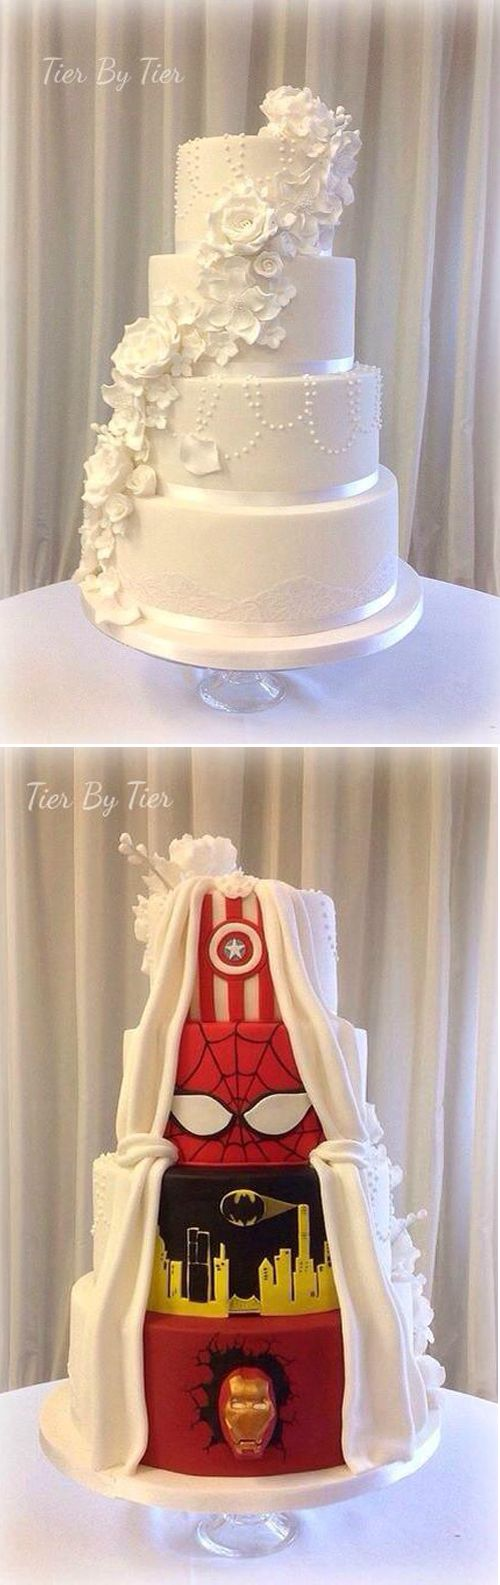 This wedding cake got the best of both worlds